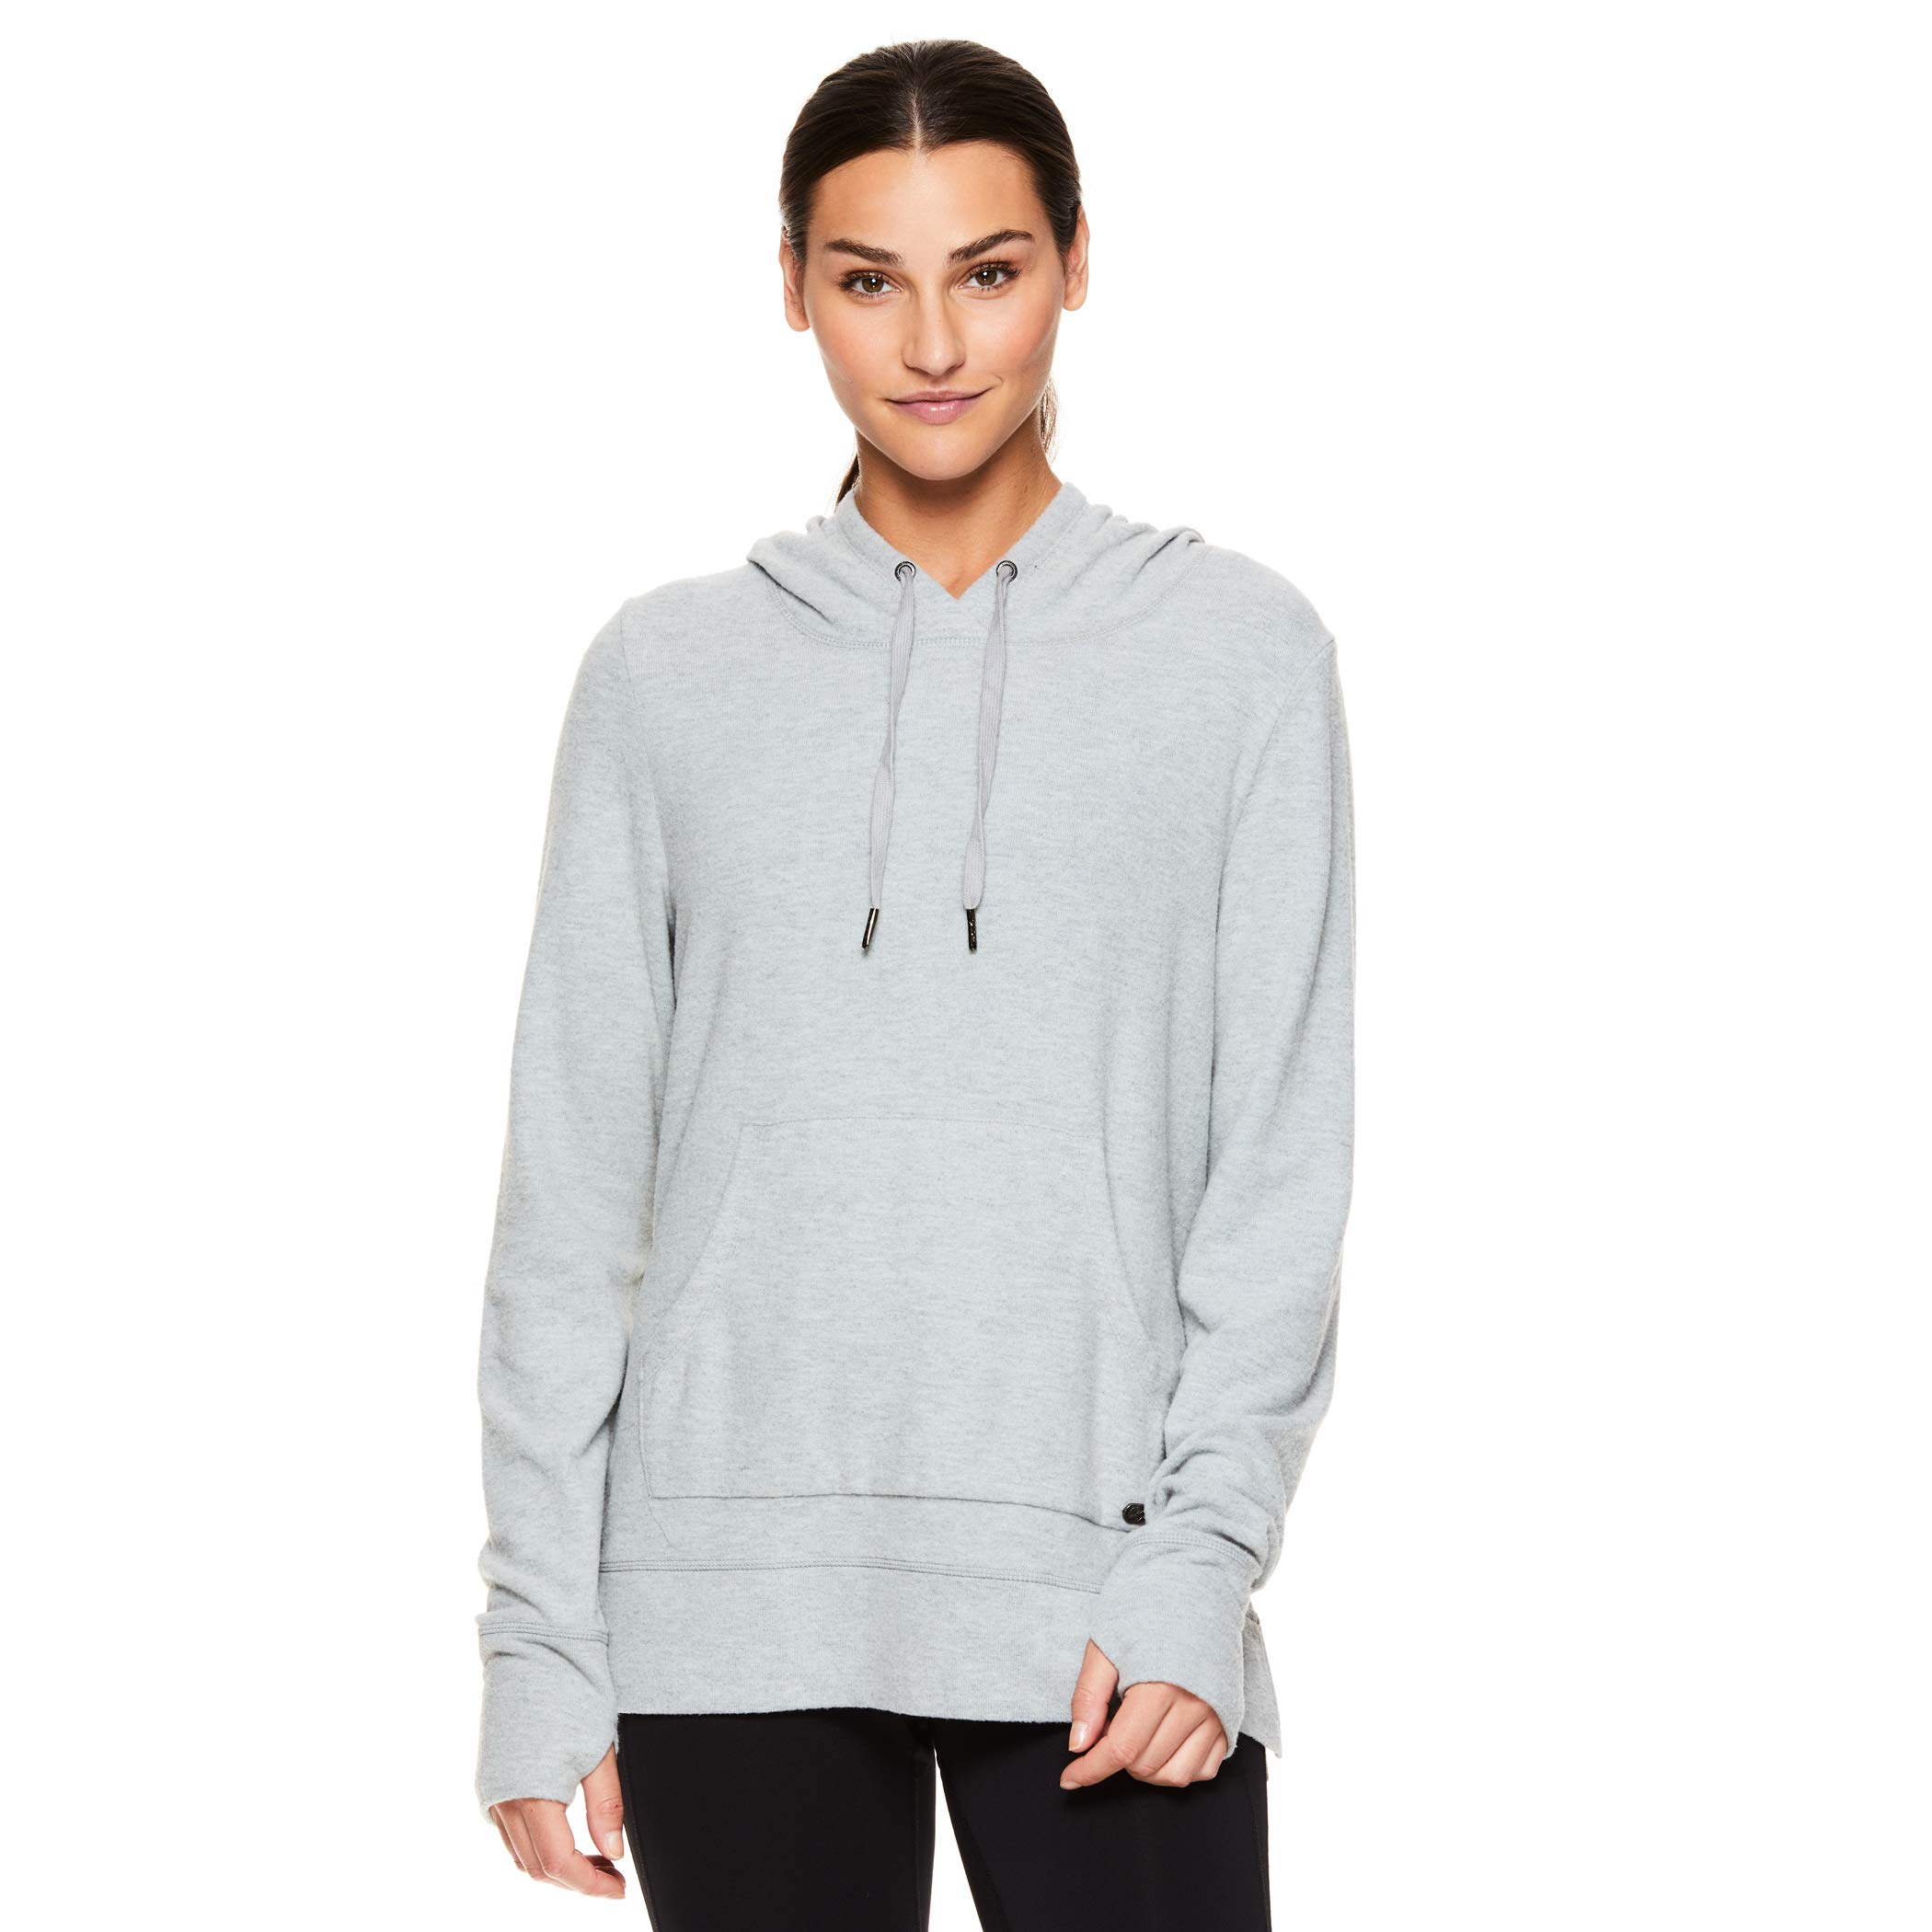 Gaiam Women's Lightweight Pullover Hoodie - Activewear Workout & Yoga Sweater - Elle Cozy Grey Heather, X-Small by Gaiam